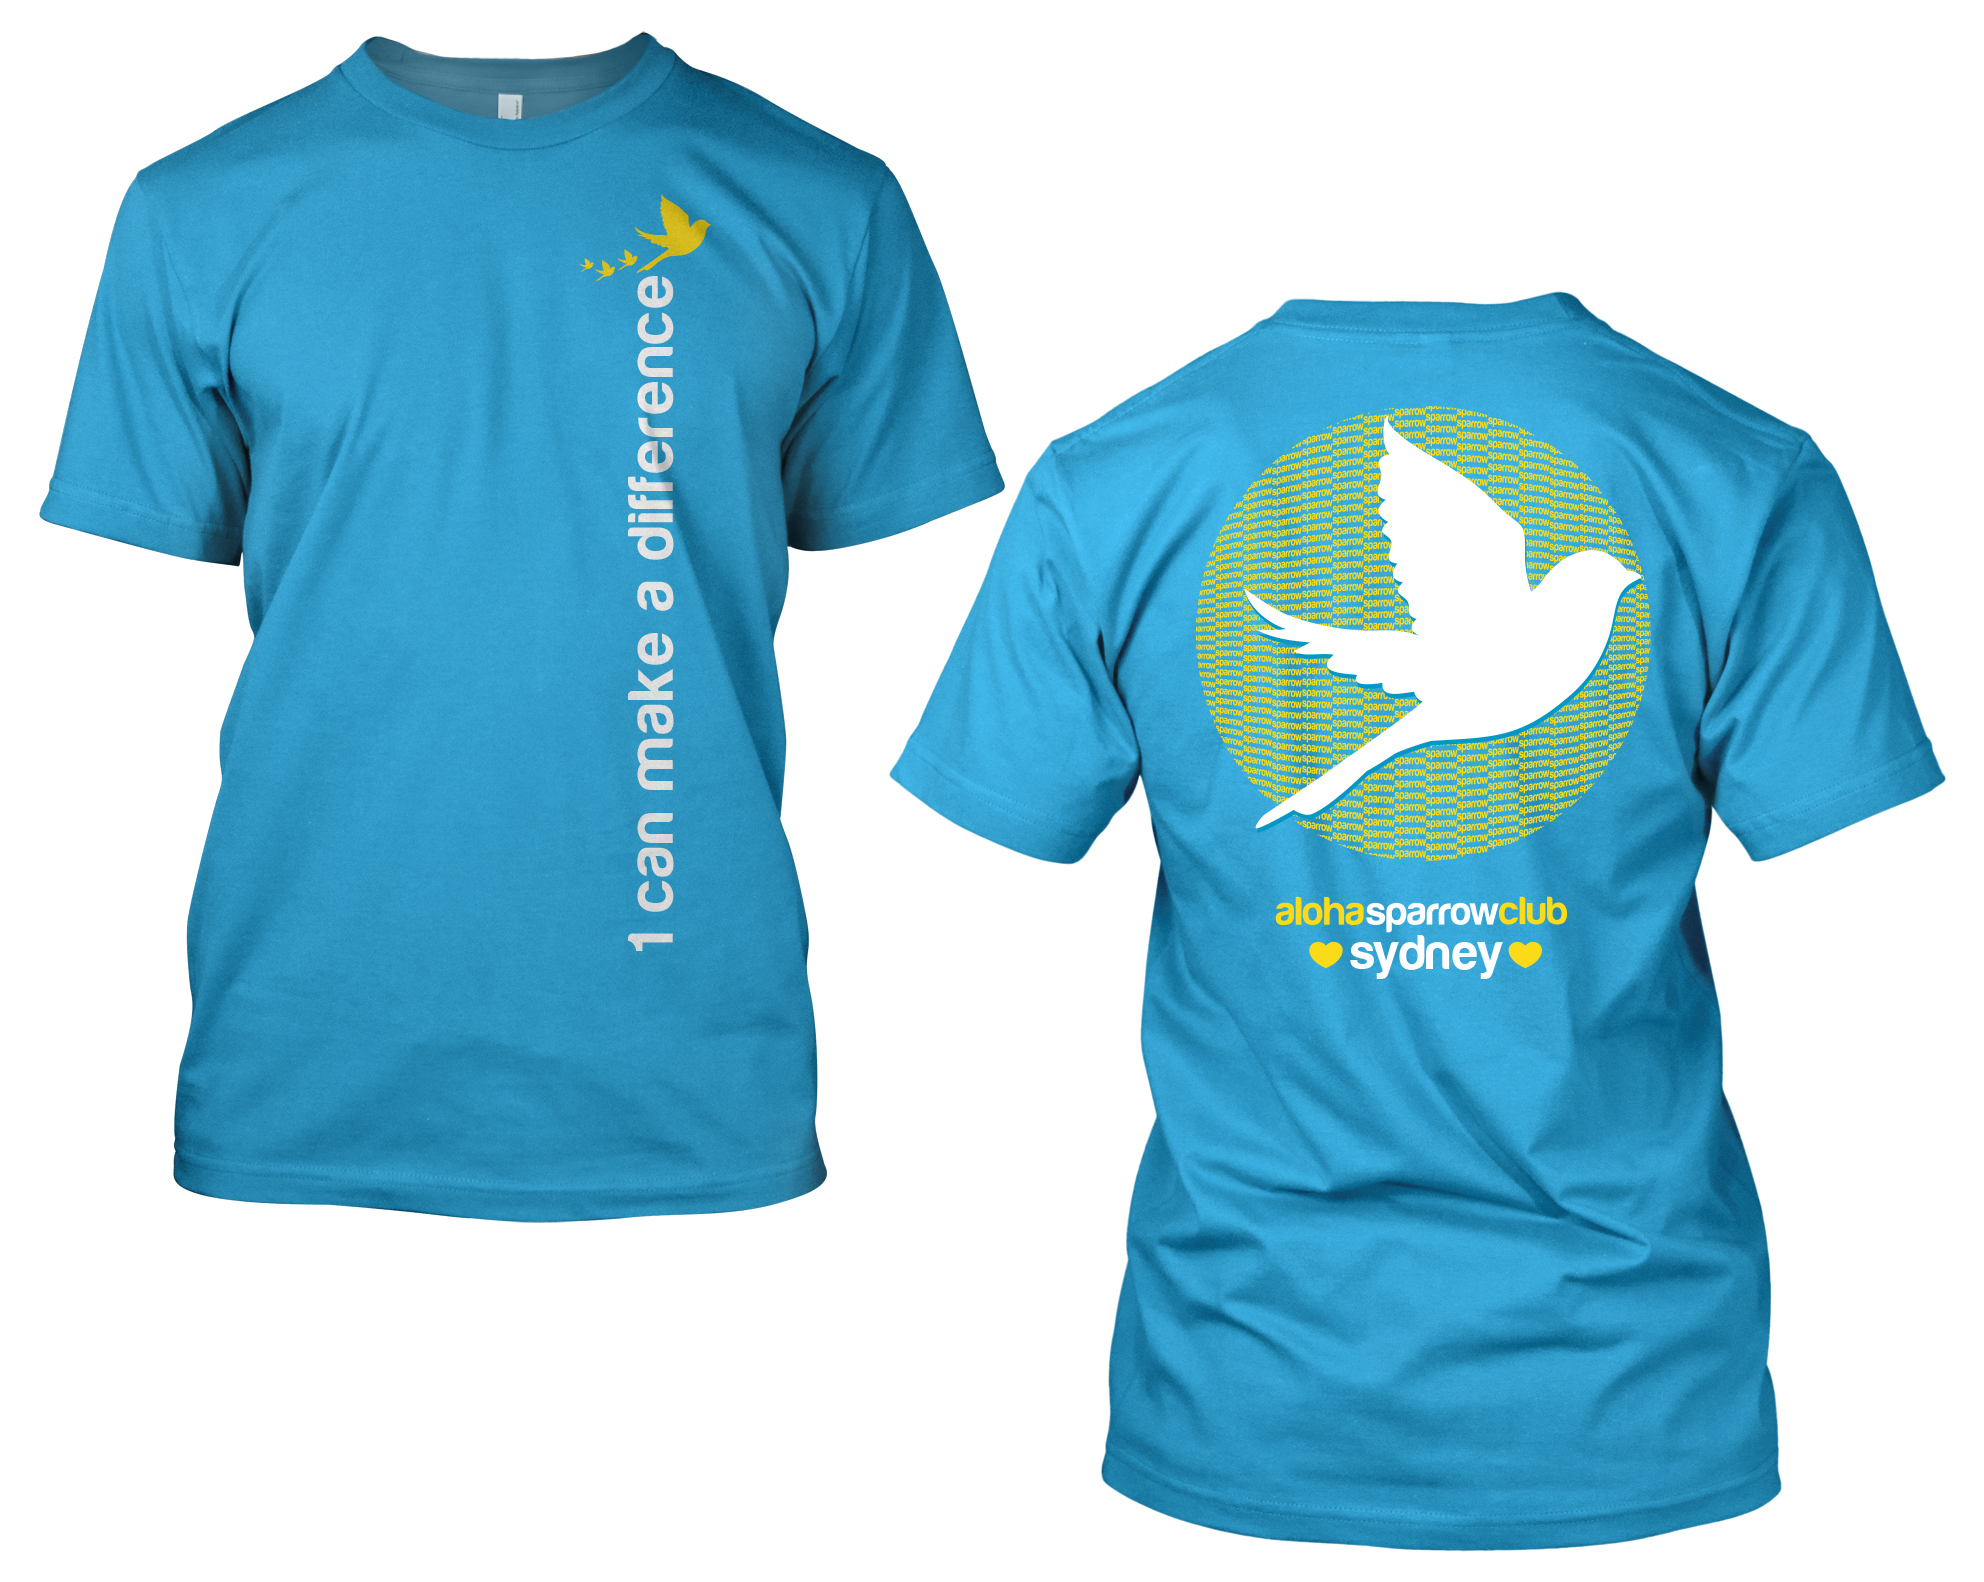 The t-shirts are $11; sweatshirts are also available for $15.